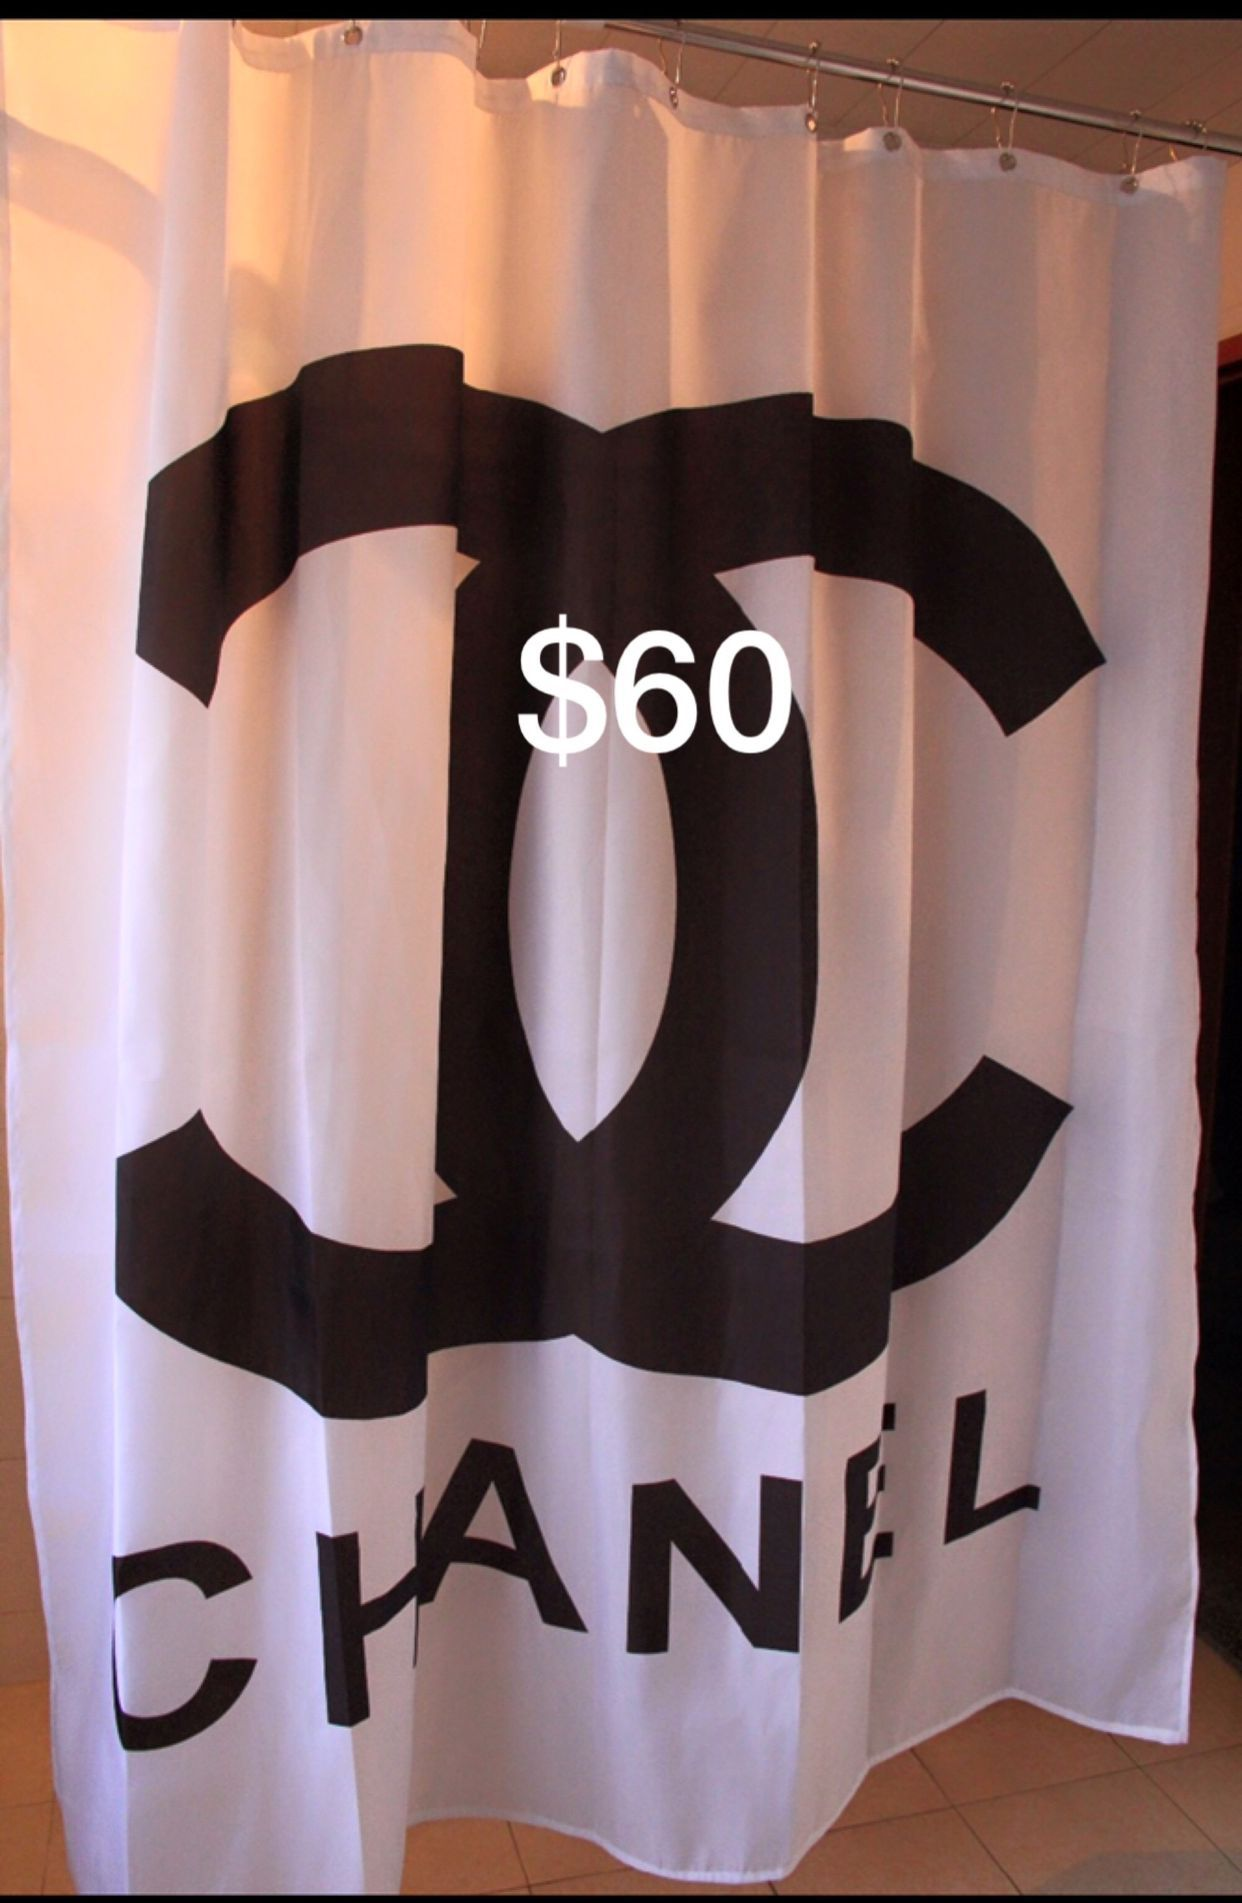 Chanel Shower Curtain Fashion Home Accessories Girly Chic